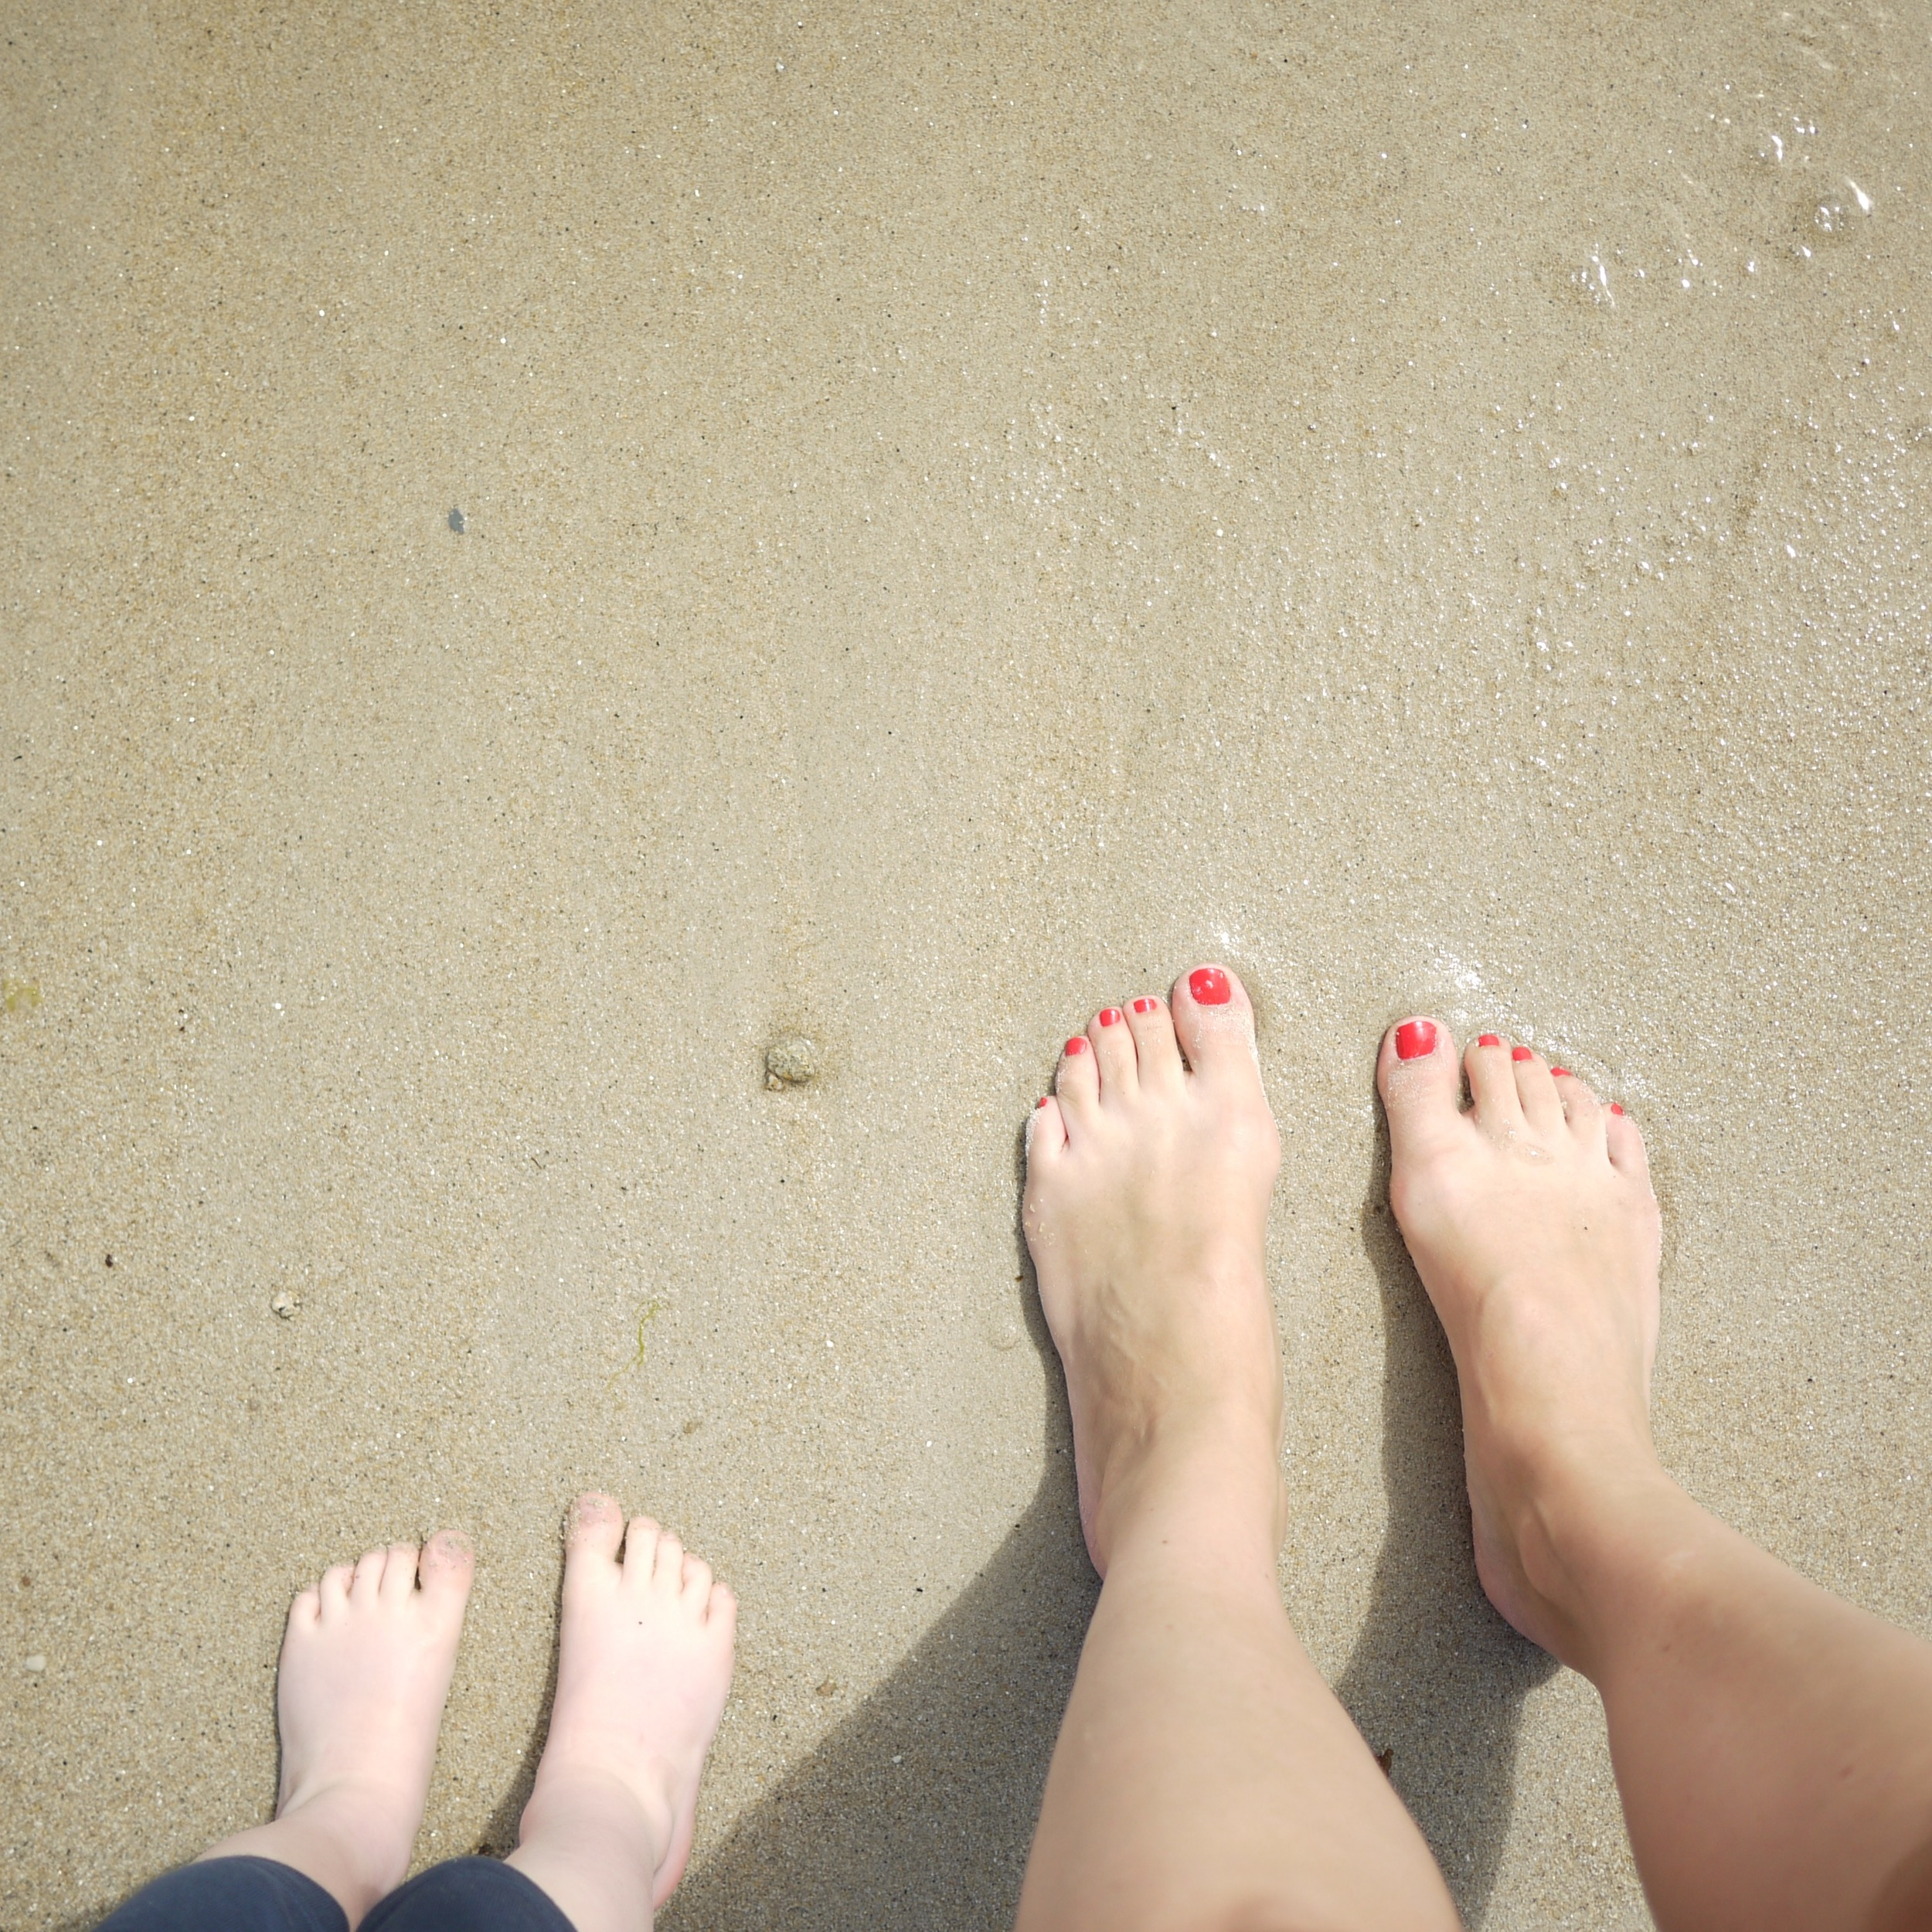 The best toes are sandy toes